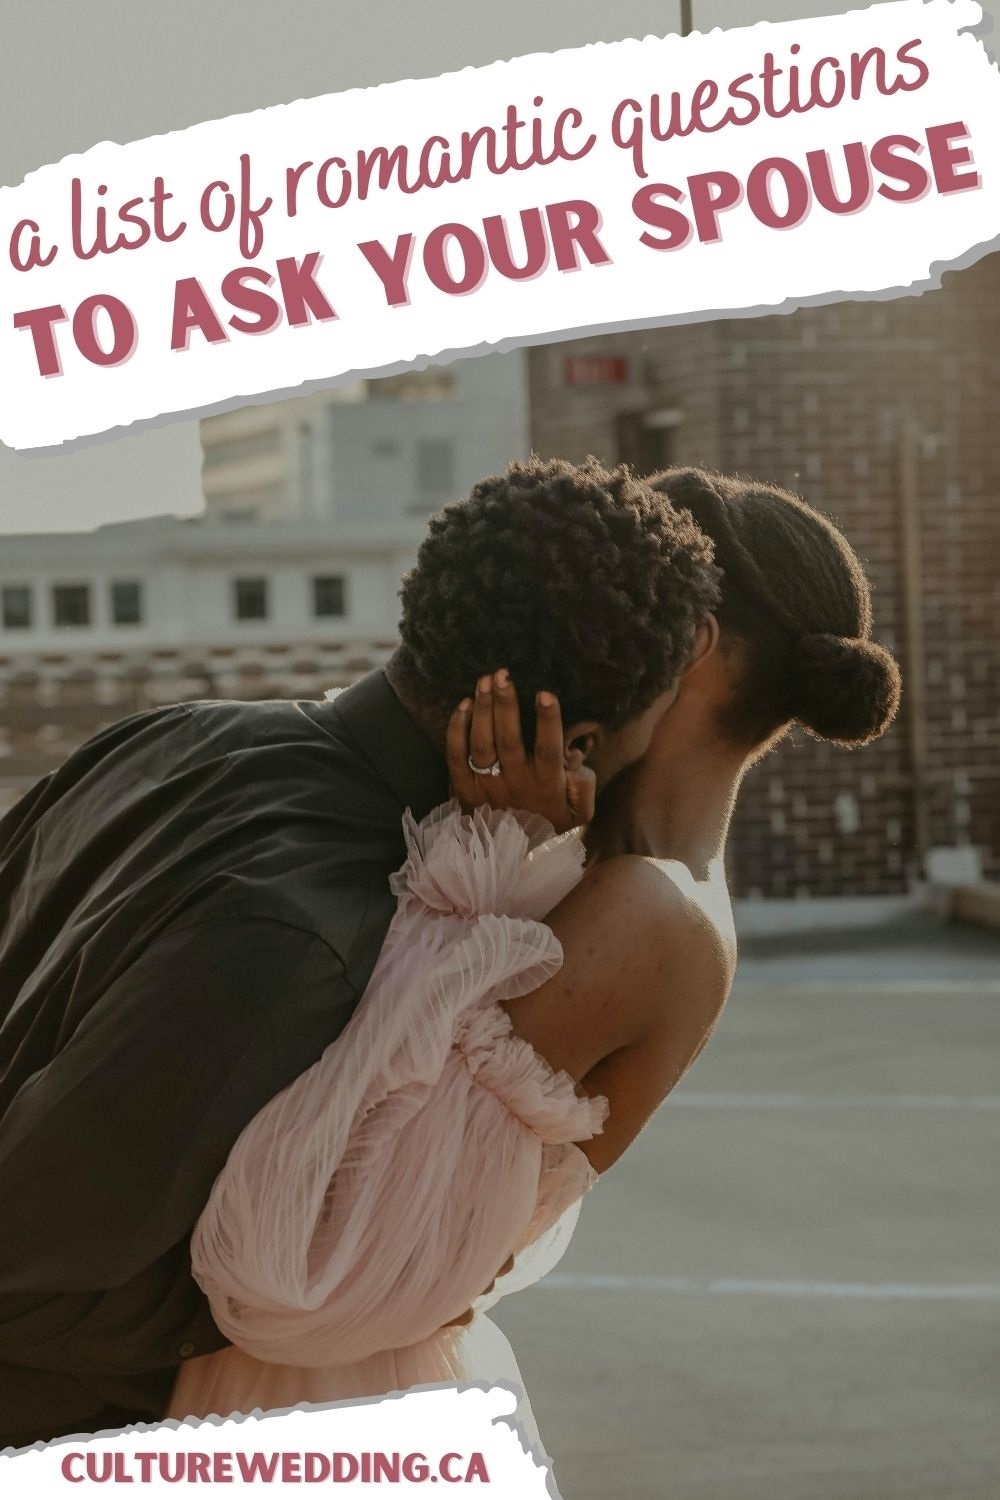 Here are a list of fun and romantic questions to ask your spouse! Want to reconnect with your spouse? You need to know how to improve communication in your marriage! Don't just ask how was your day? Use this checklist of questions to ask your husband to reconnect and improve your relationship! These are the best funny and thoughtful questions to ask your spouse! Great marriage tips!